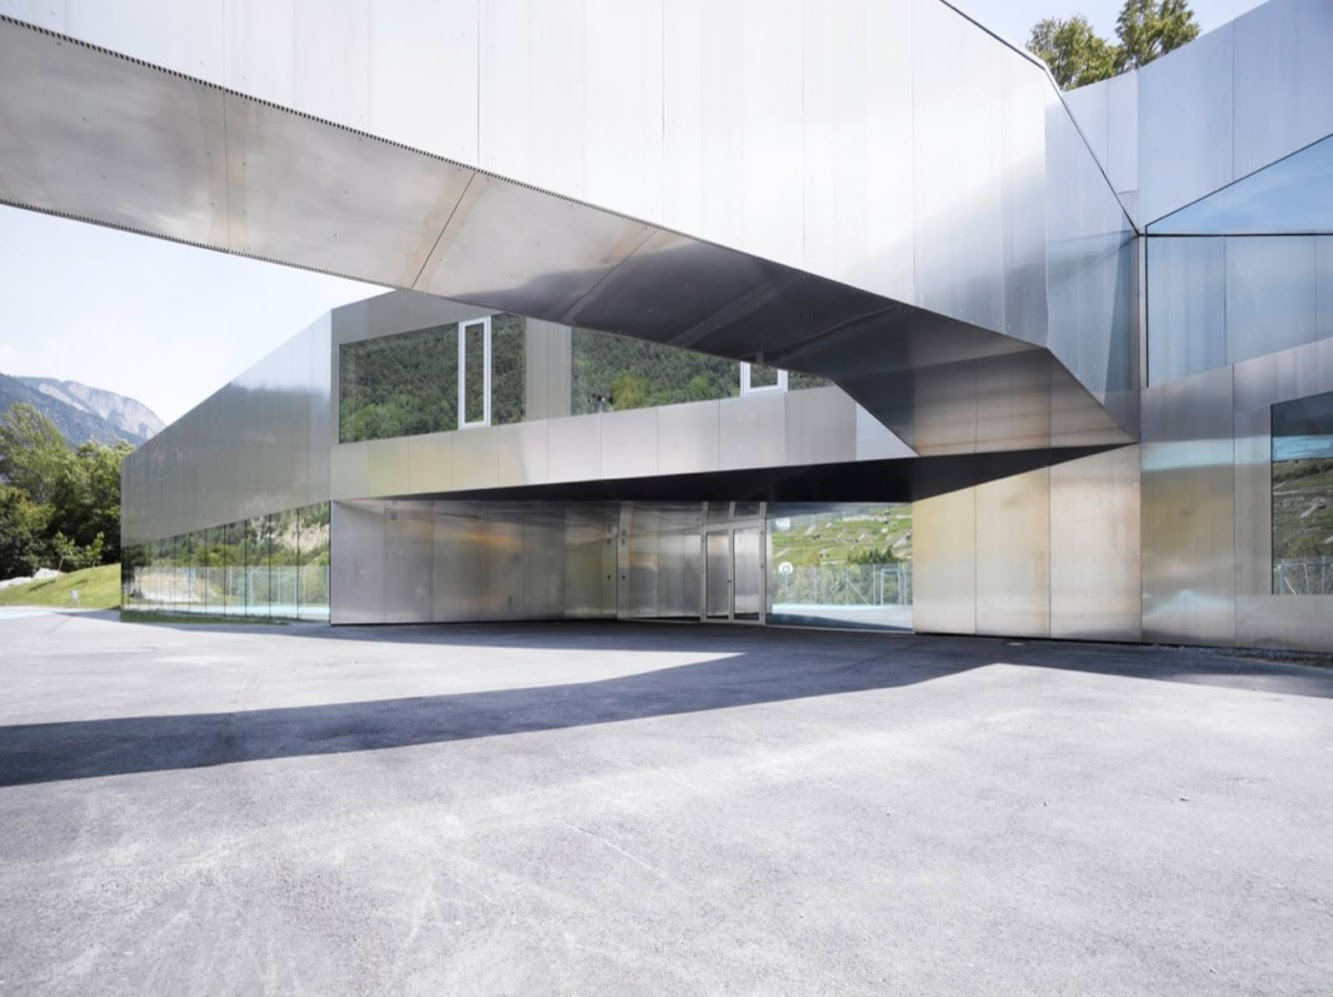 Bovernier, Svizzera: Bovernier School Extension by Bonnard Woeffray Architectes